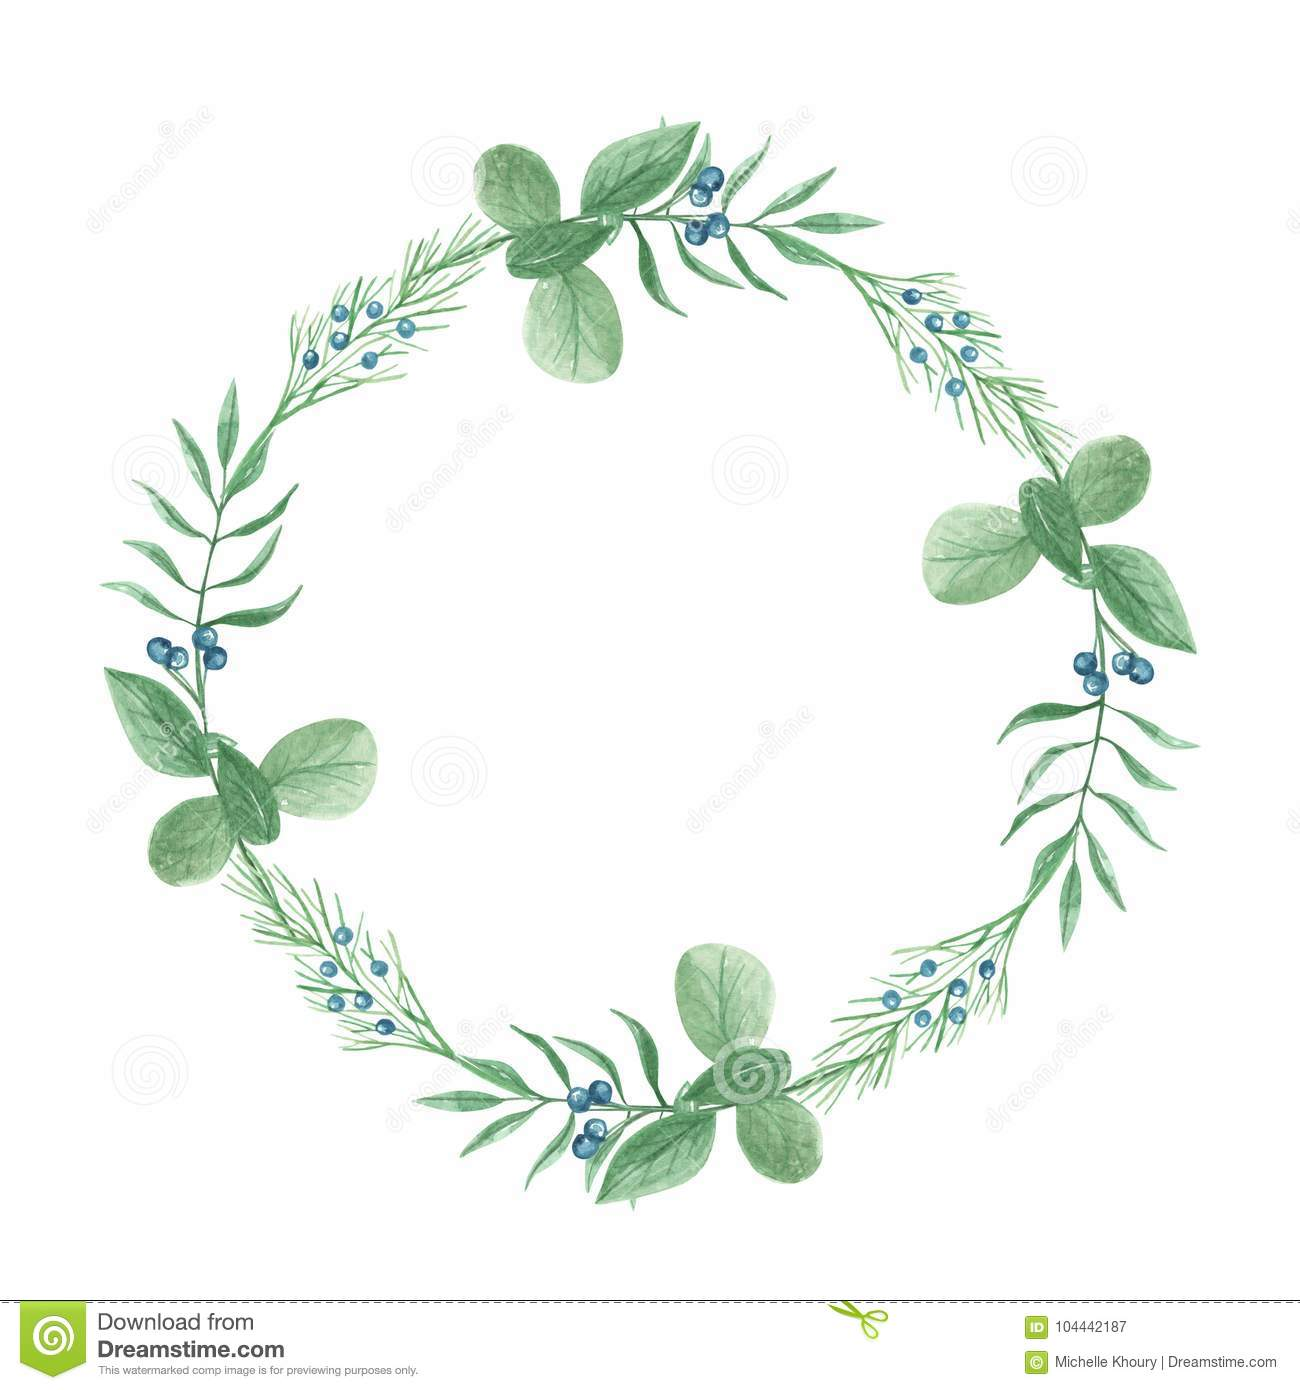 14994d568f45 Watercolor Foliage Circle Wreath Winter Berries Leaves Festive Frame ...